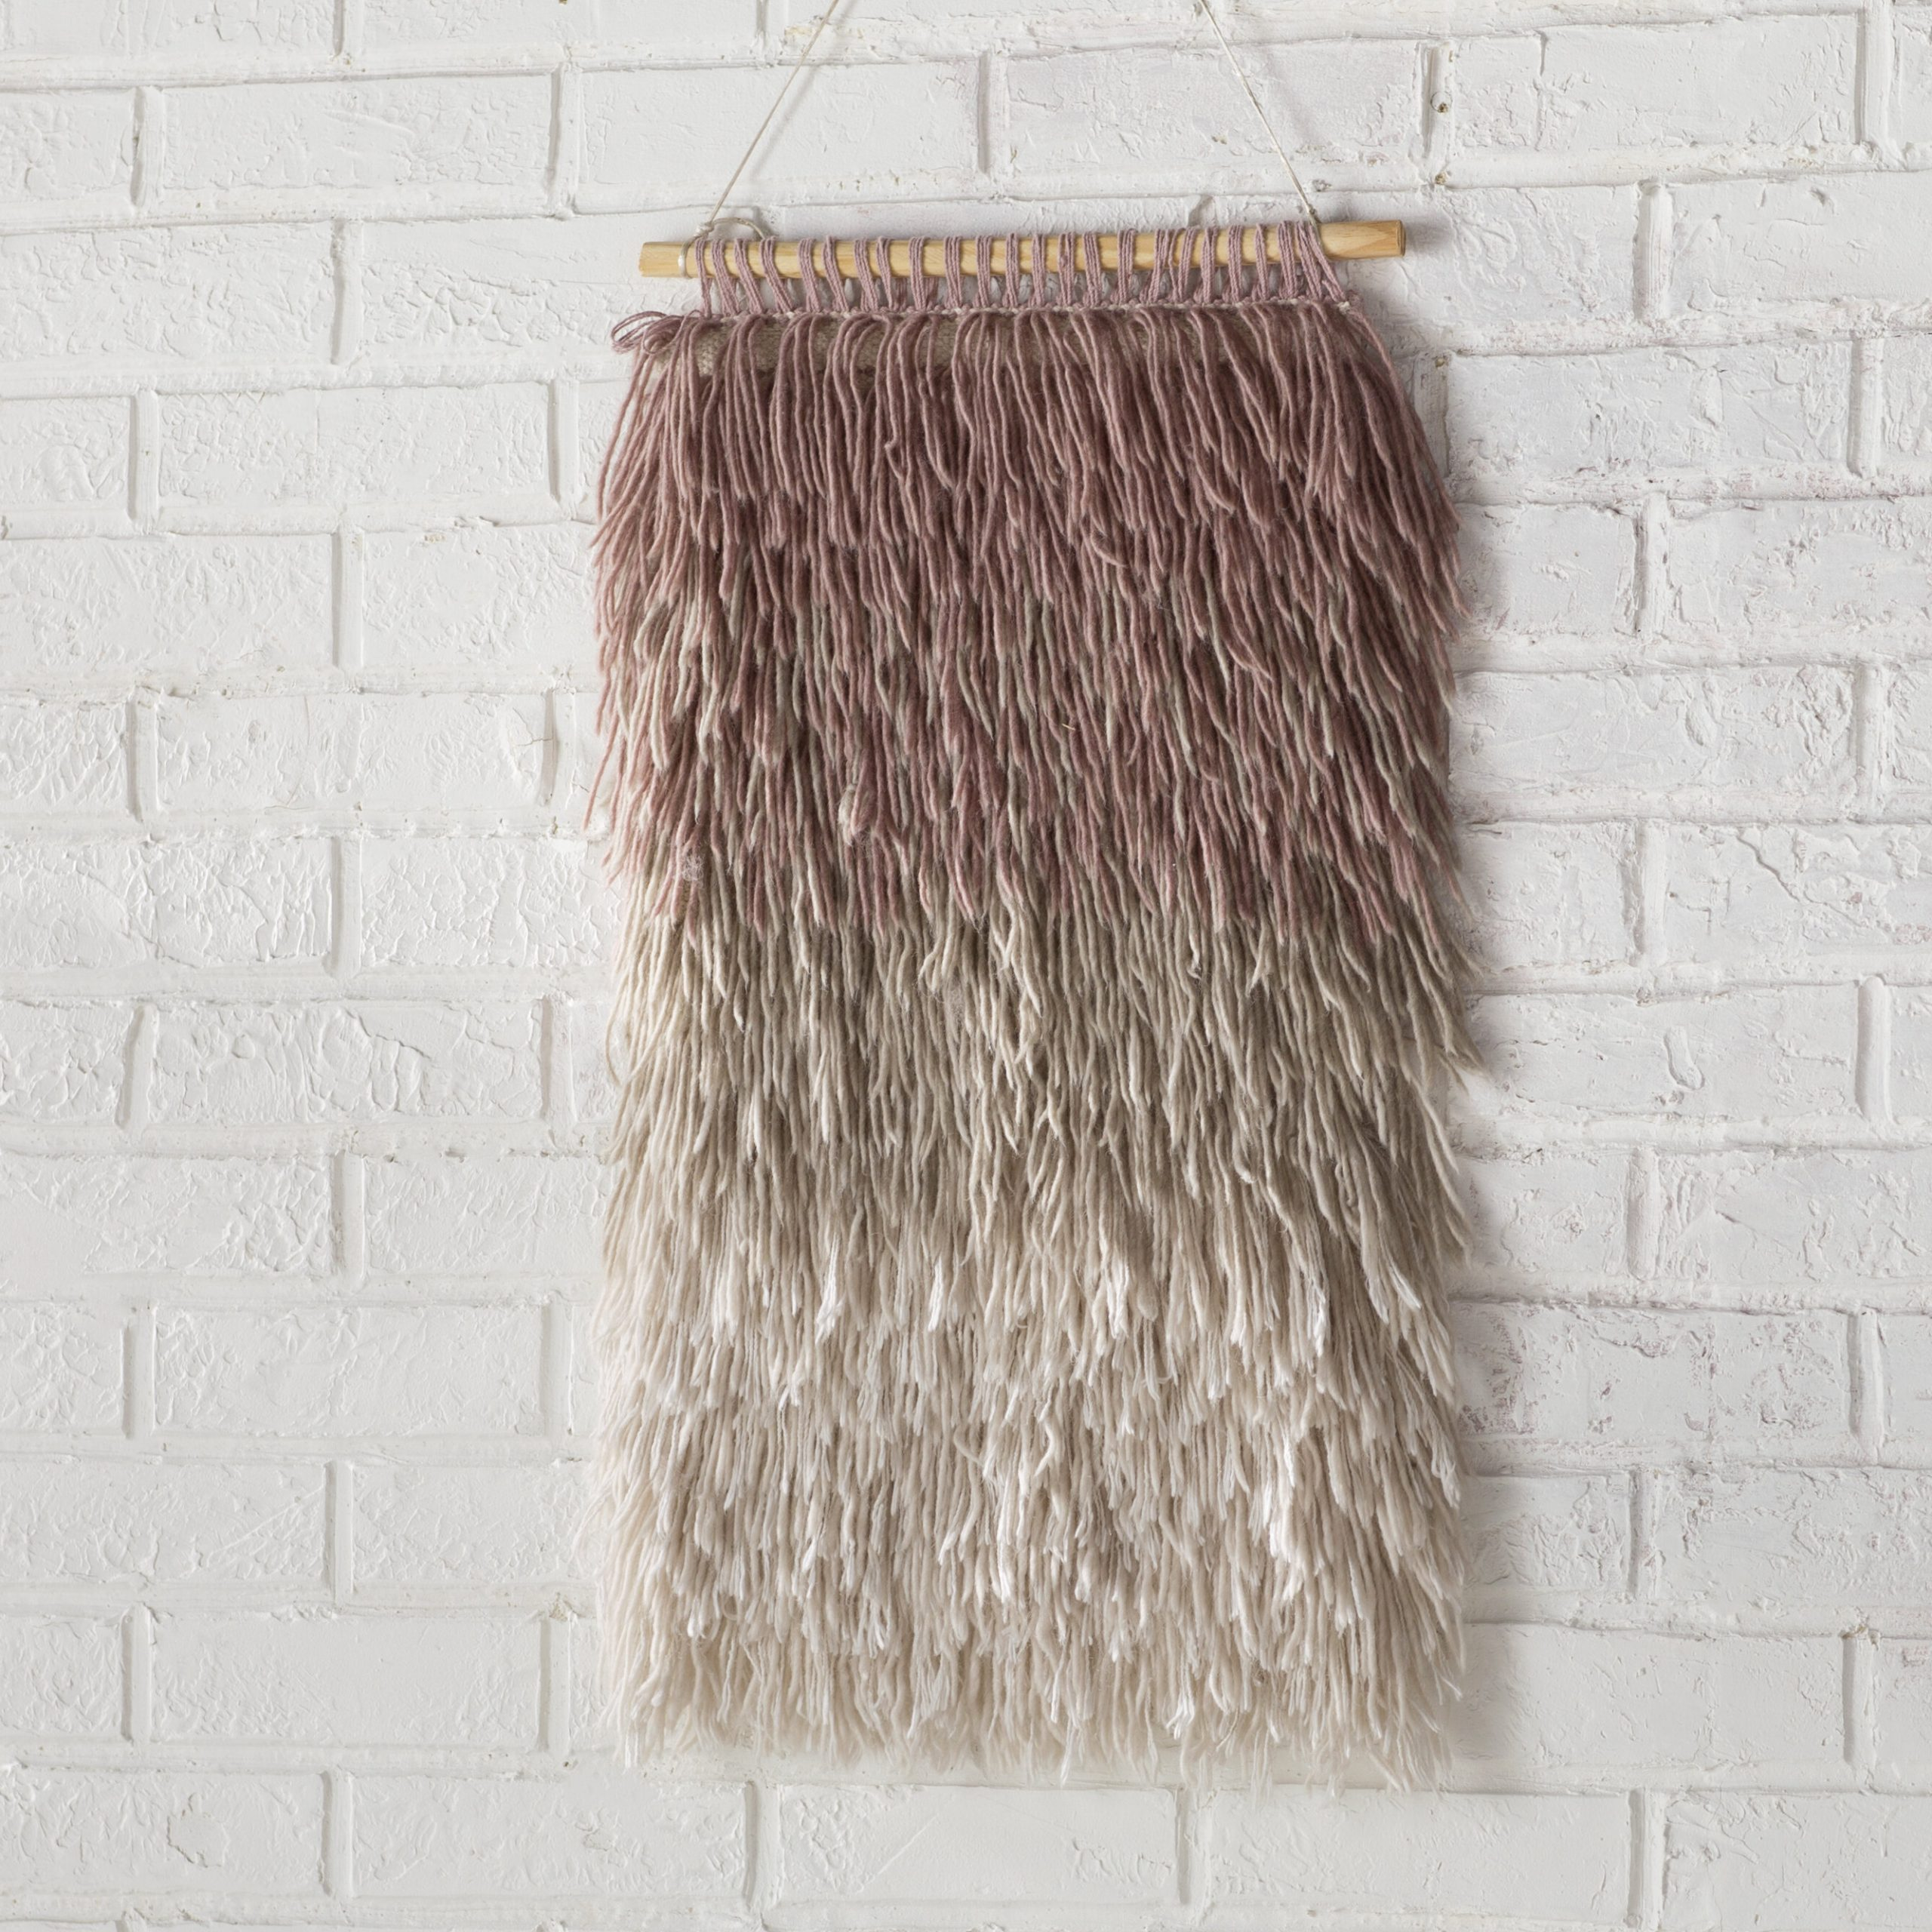 Most Recently Released Blended Fabric Wall Hangings With Rod Included Within Destrie Wall Hanging With Rod Included (View 11 of 20)